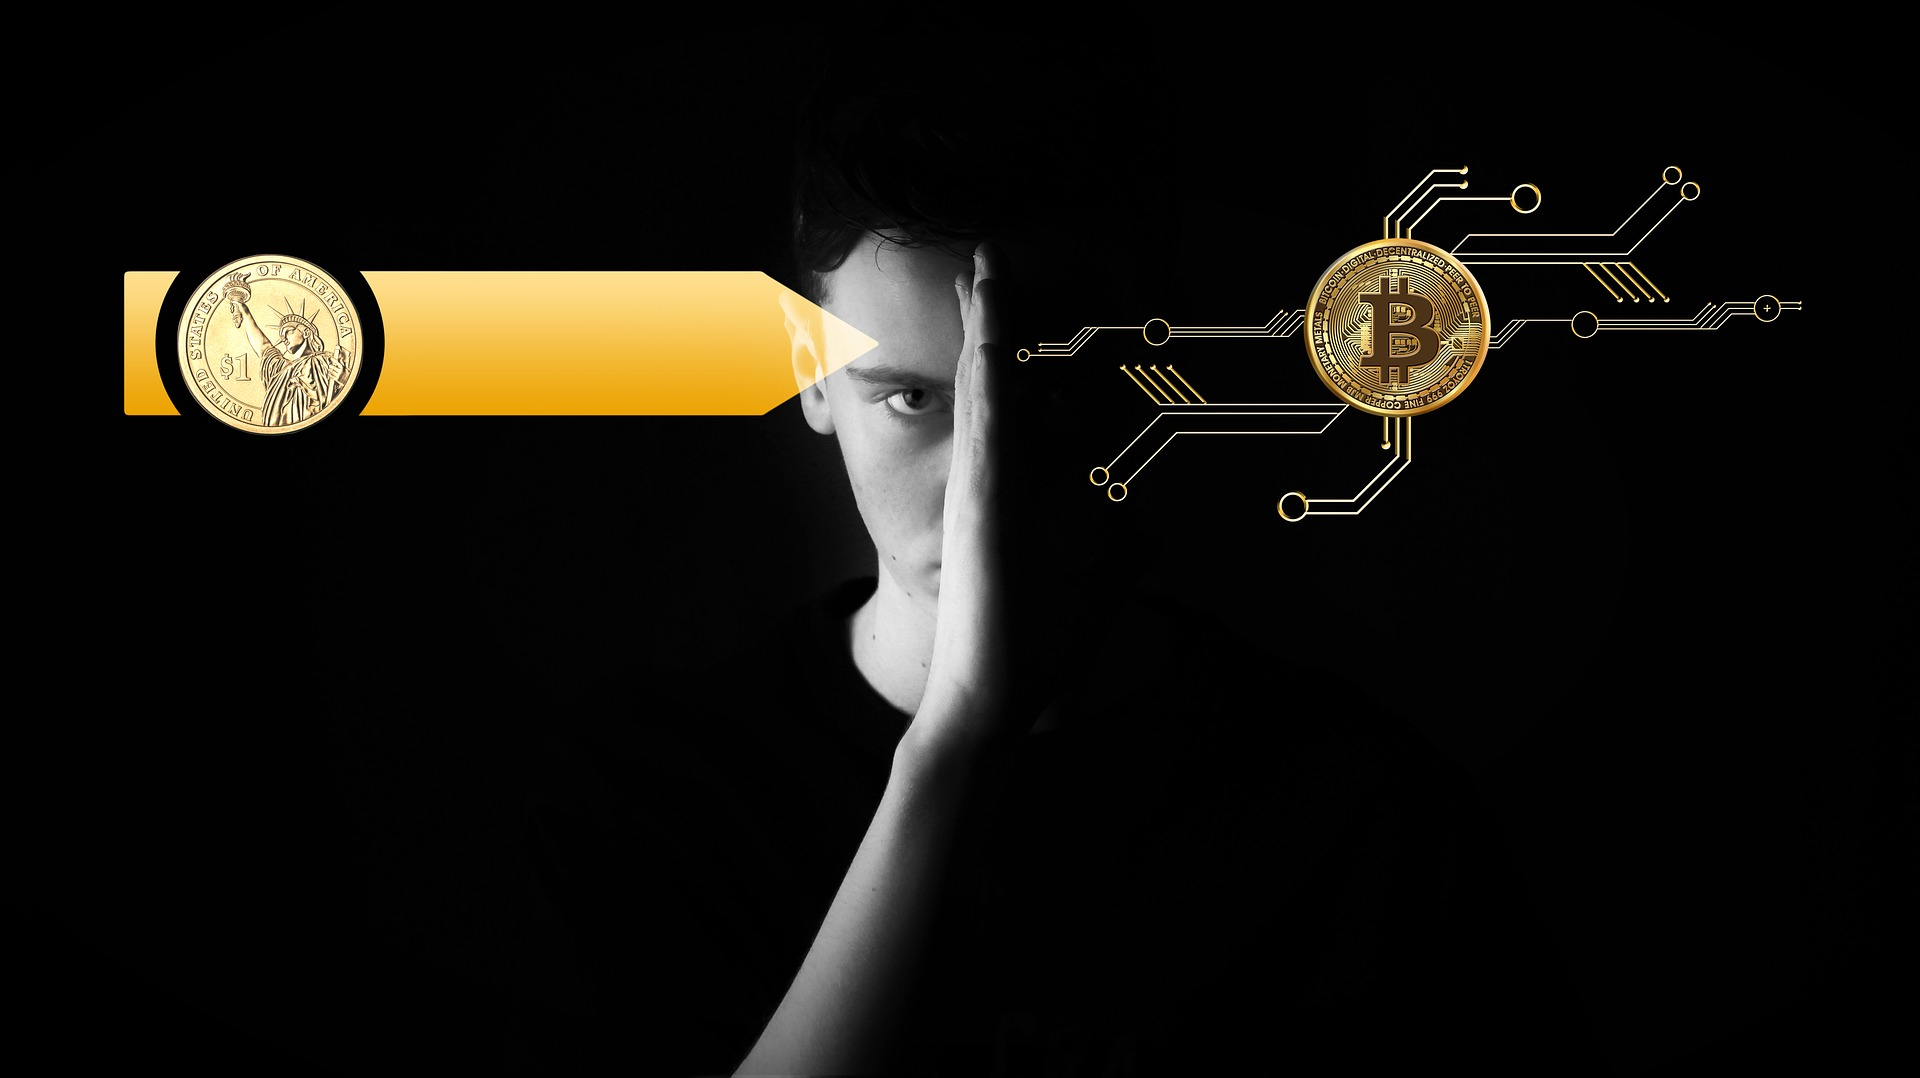 Crypto Exchange OKCoin will Suspend Trading of Bitcoin Cash and BSV